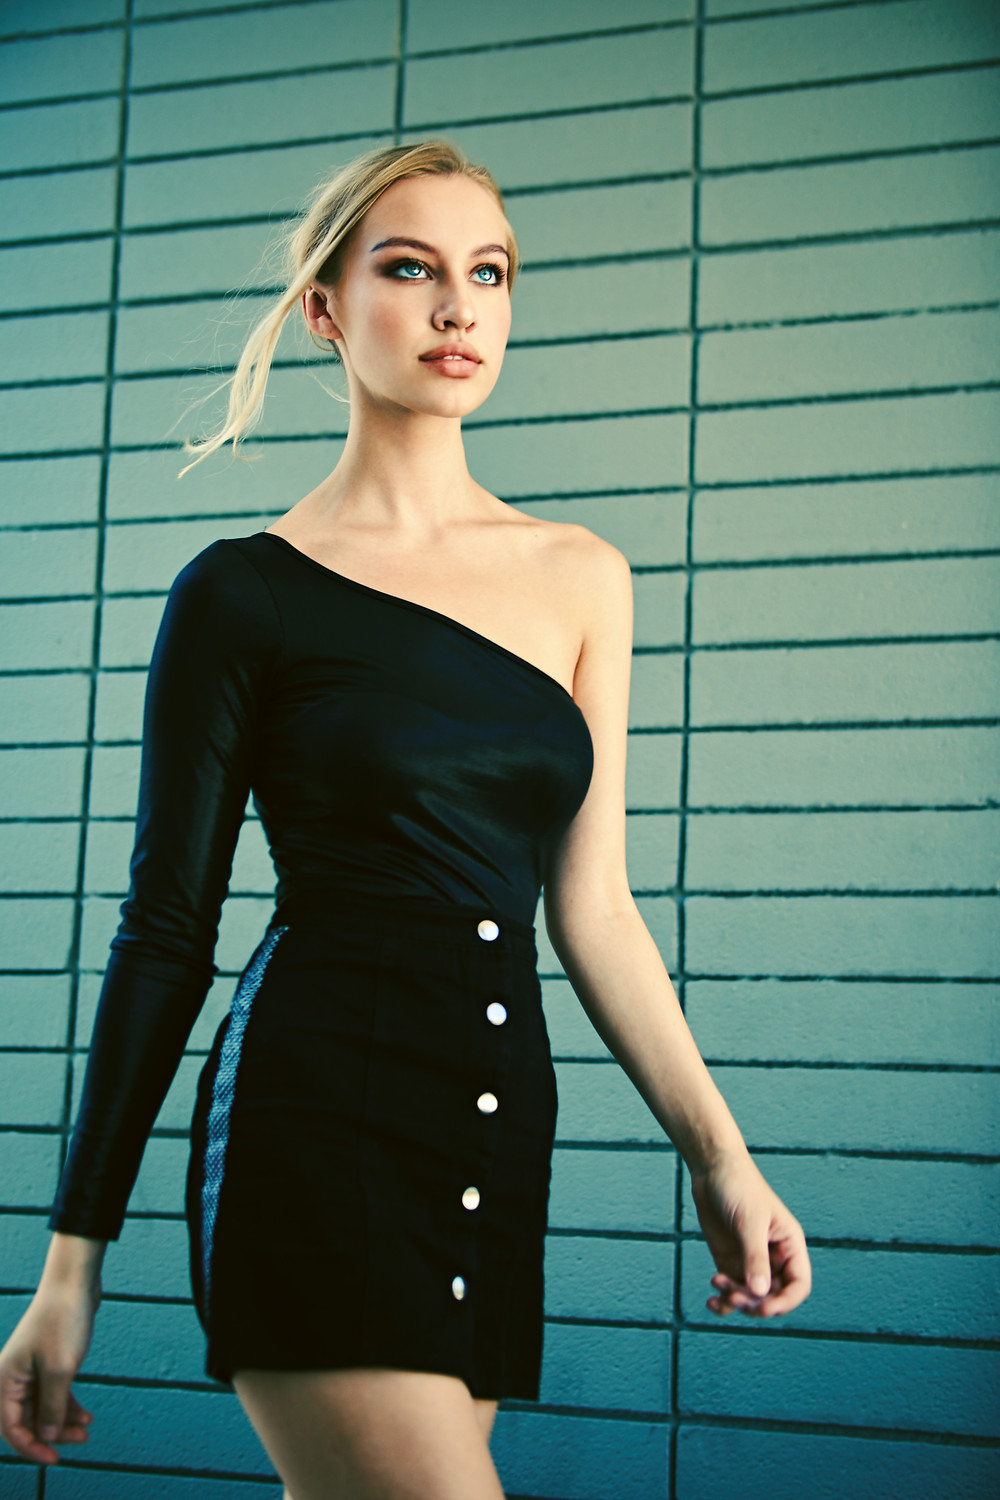 Swedish model Emelie MacInnes walks through the streets of Hollywood and poses in a fashion-forward black top and skirt with striking blue eyes and blonde hair blowing in the wind by Los Angeles fashion photographer Patrick Patton.